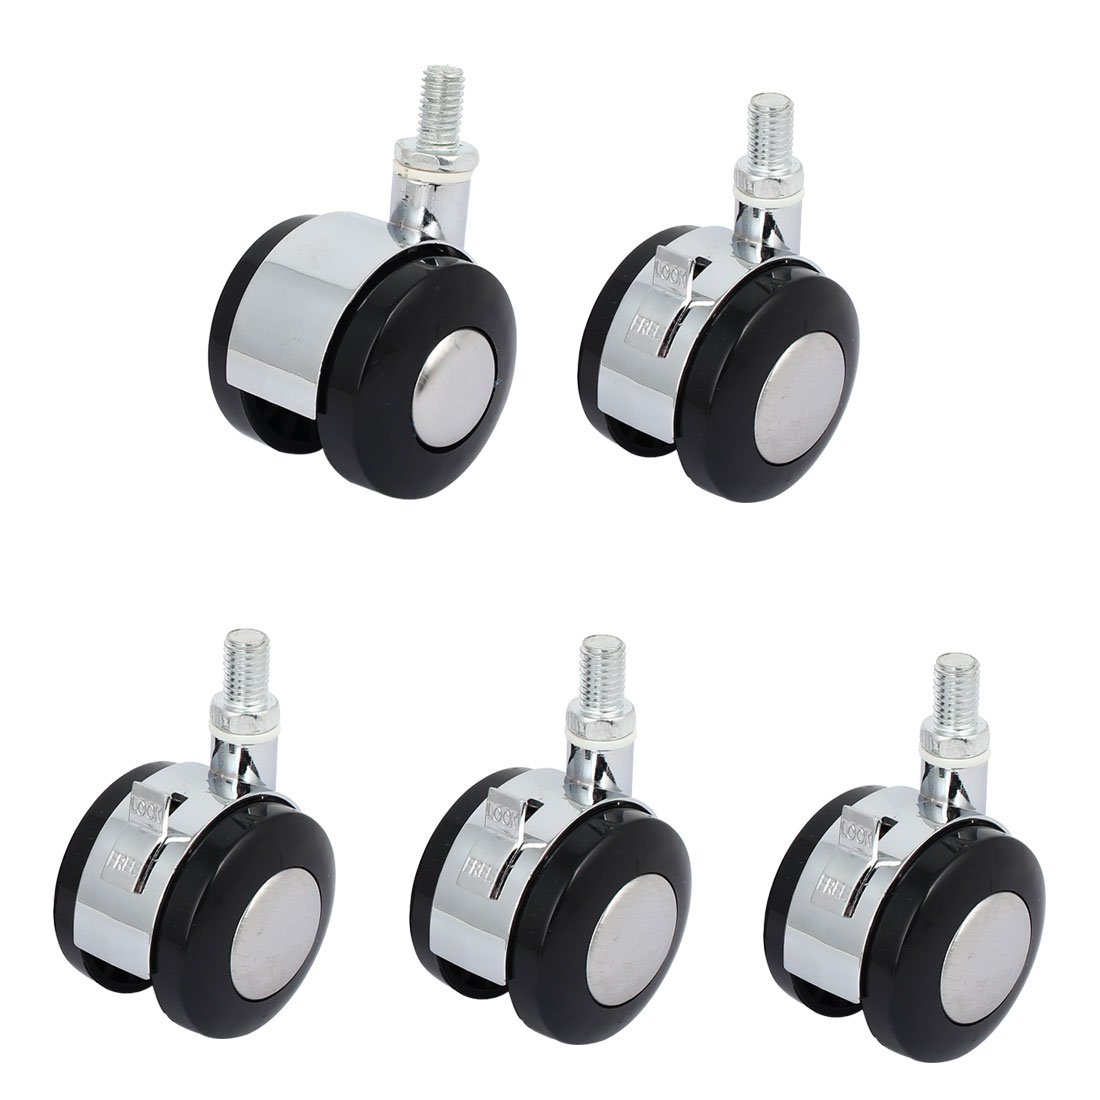 uxcell 5 Caster Set 1.5 Inches Wheels 4 Swivel 1 Brake Black for Trolley Cart